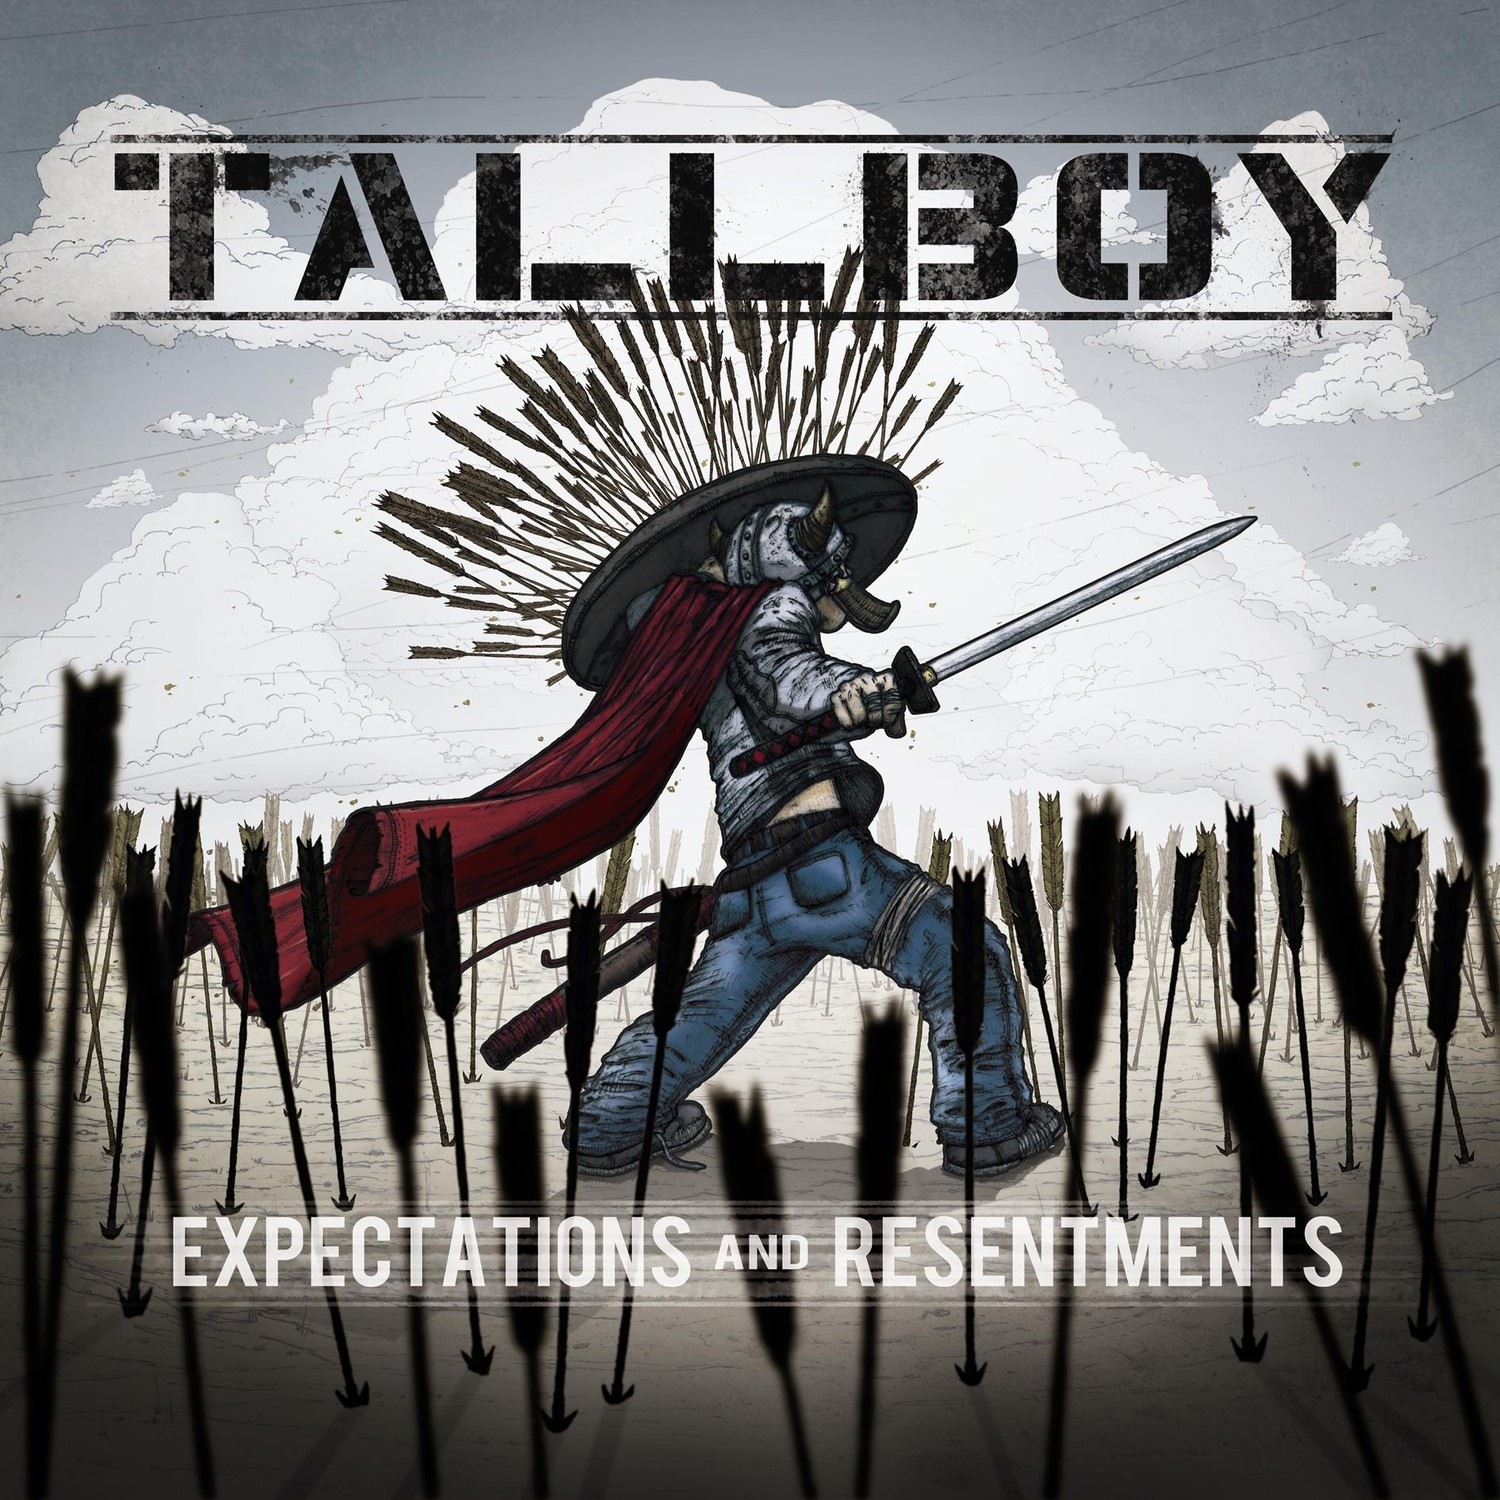 Tallboy - Expectations and Resentments